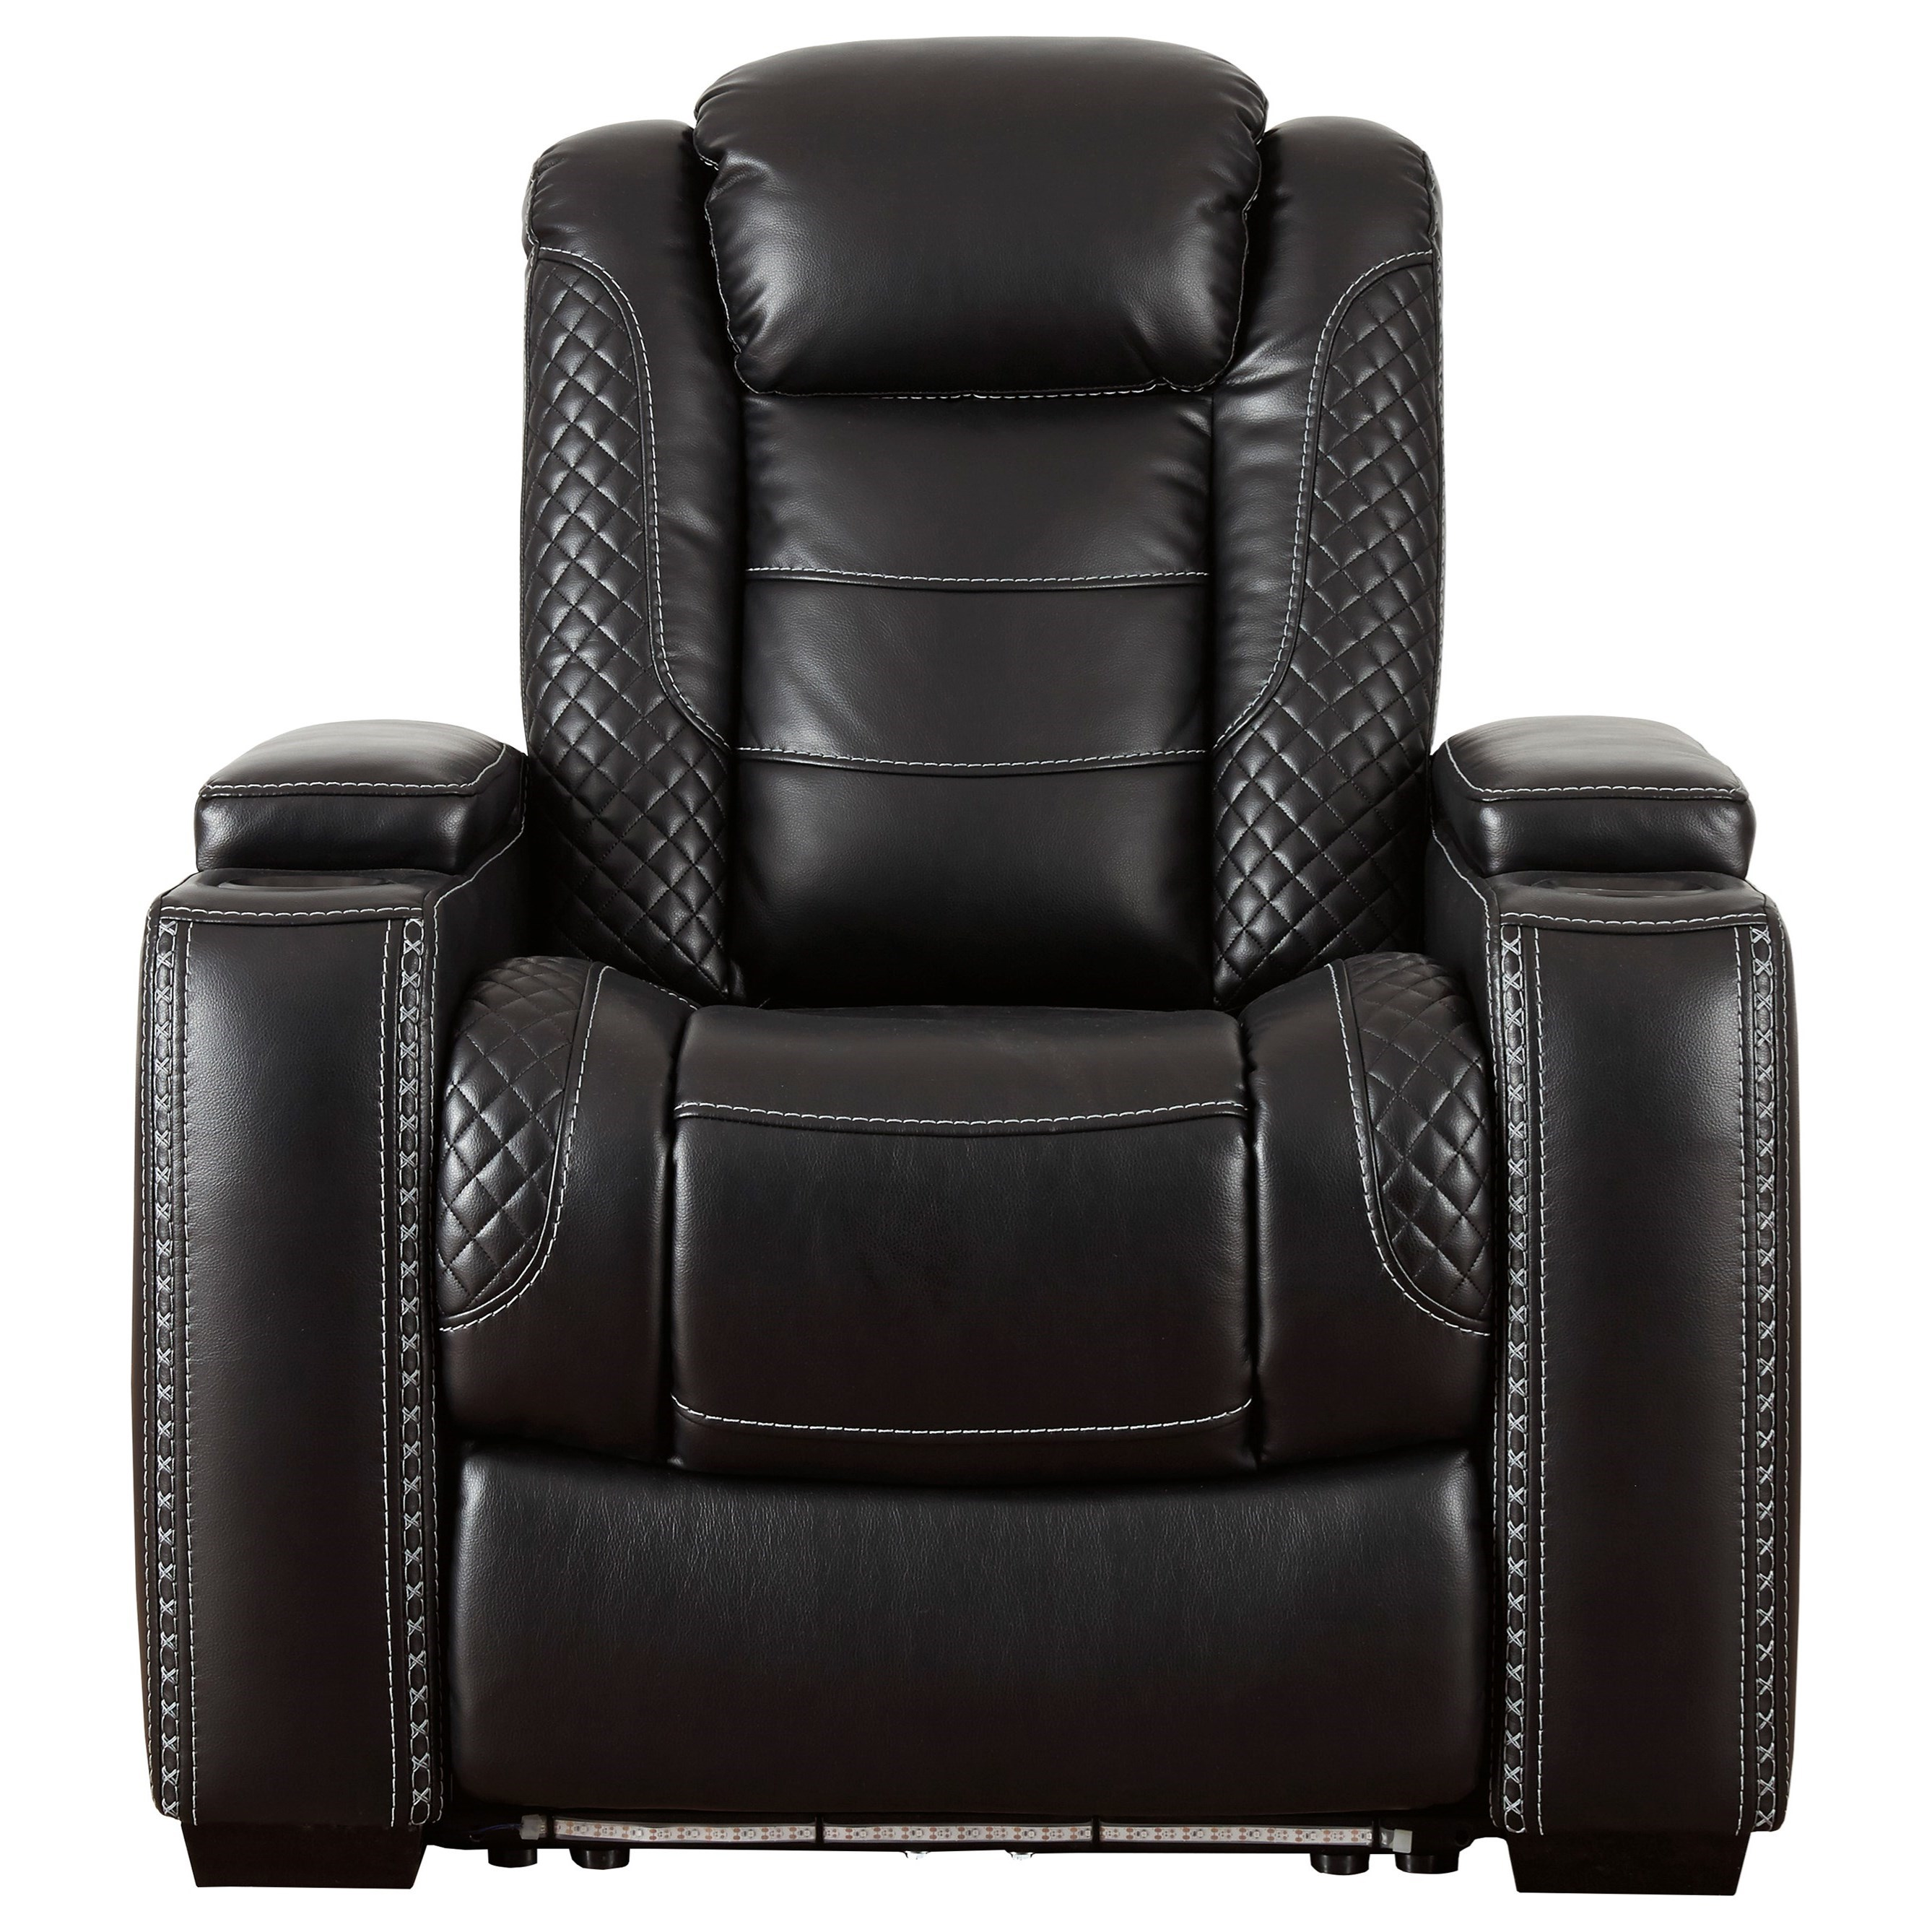 Party Time Power Recliner with Adjustable Headrest by Signature Design by Ashley at VanDrie Home Furnishings